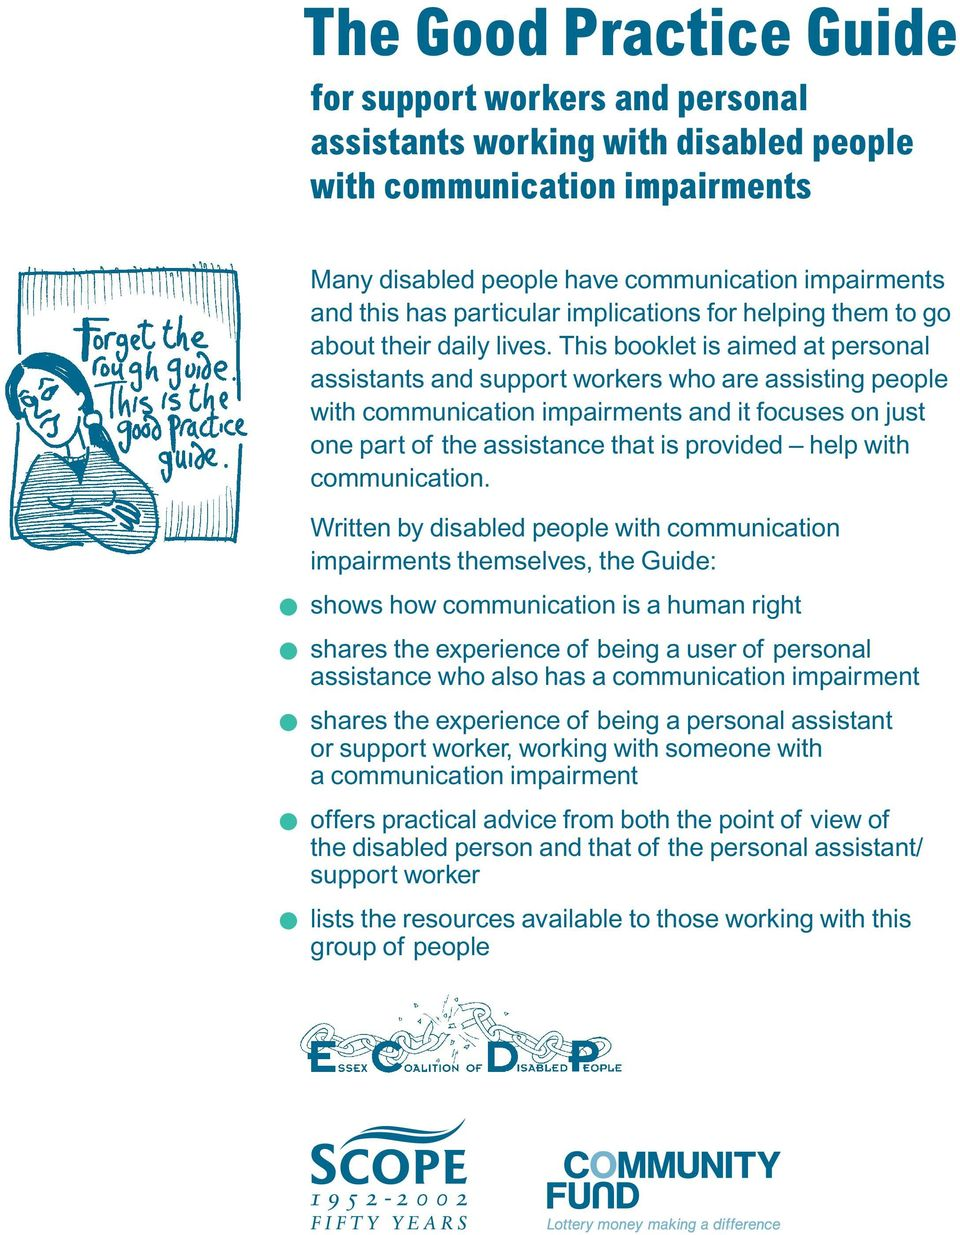 This booklet is aimed at personal assistants and support workers who are assisting people with communication impairments and it focuses on just one part of the assistance that is provided help with